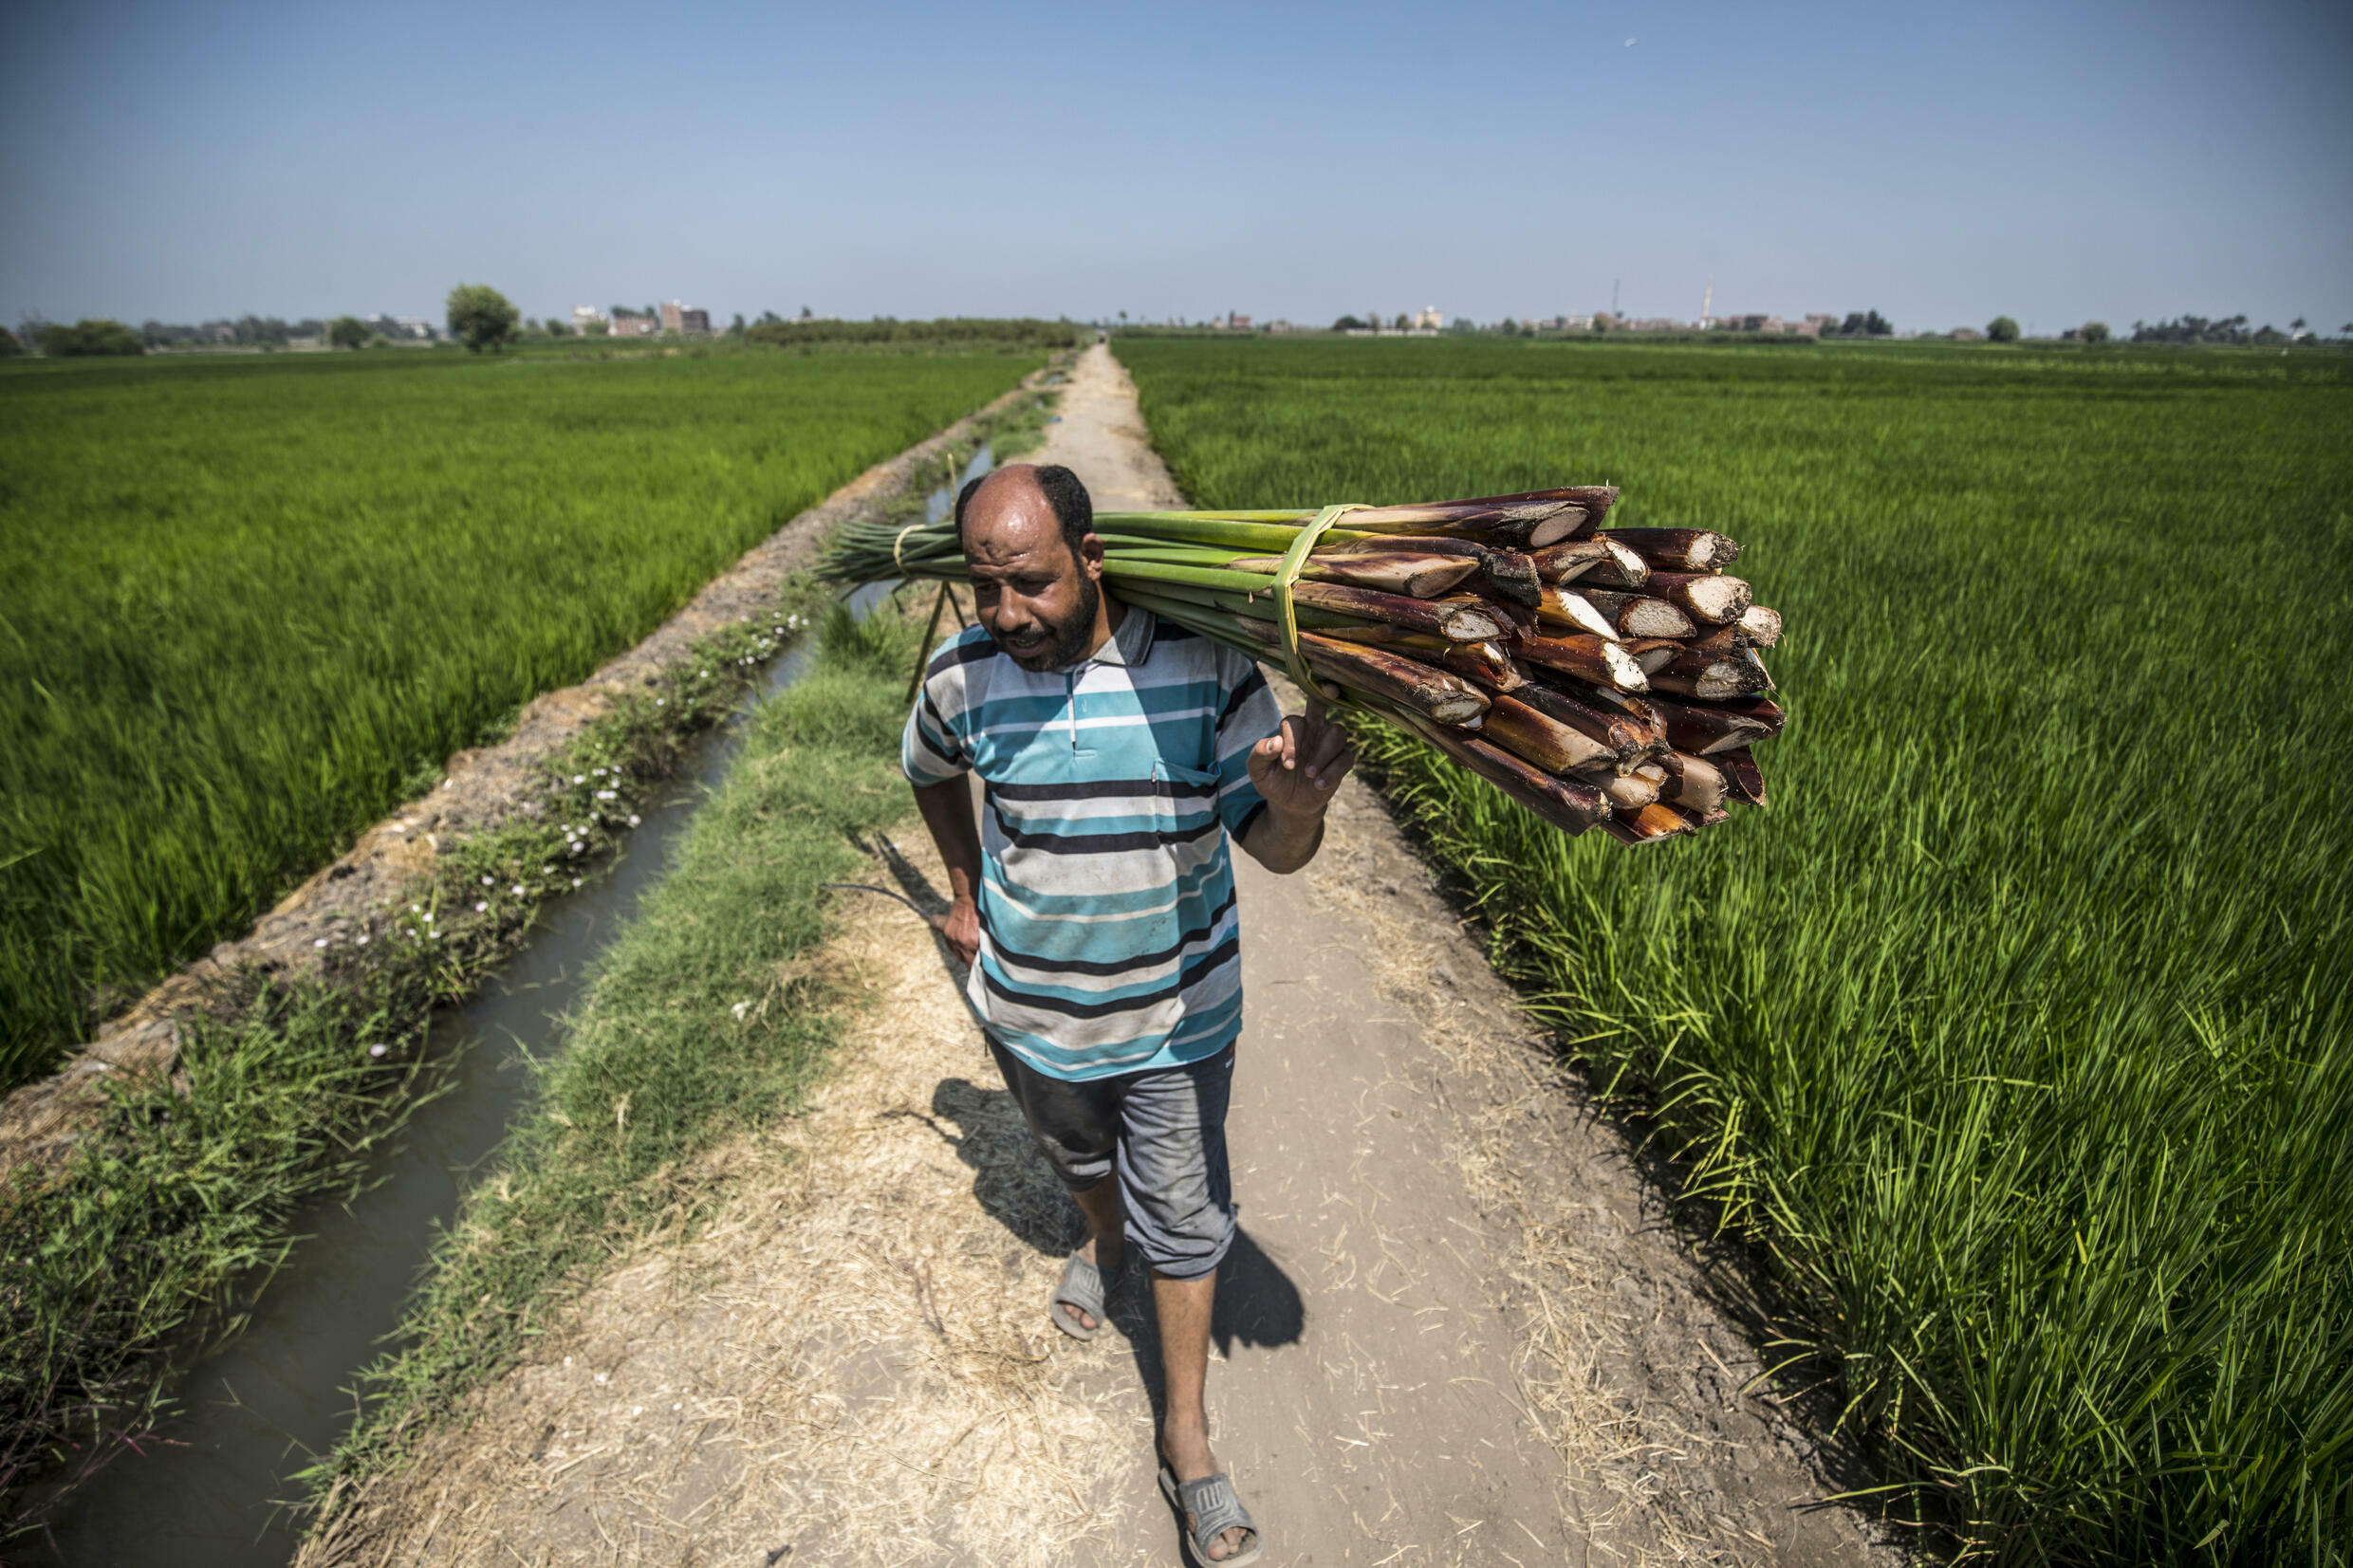 Egypt's Nile river valley is one of the areas the World Bank predicts people will leave due to water shortages